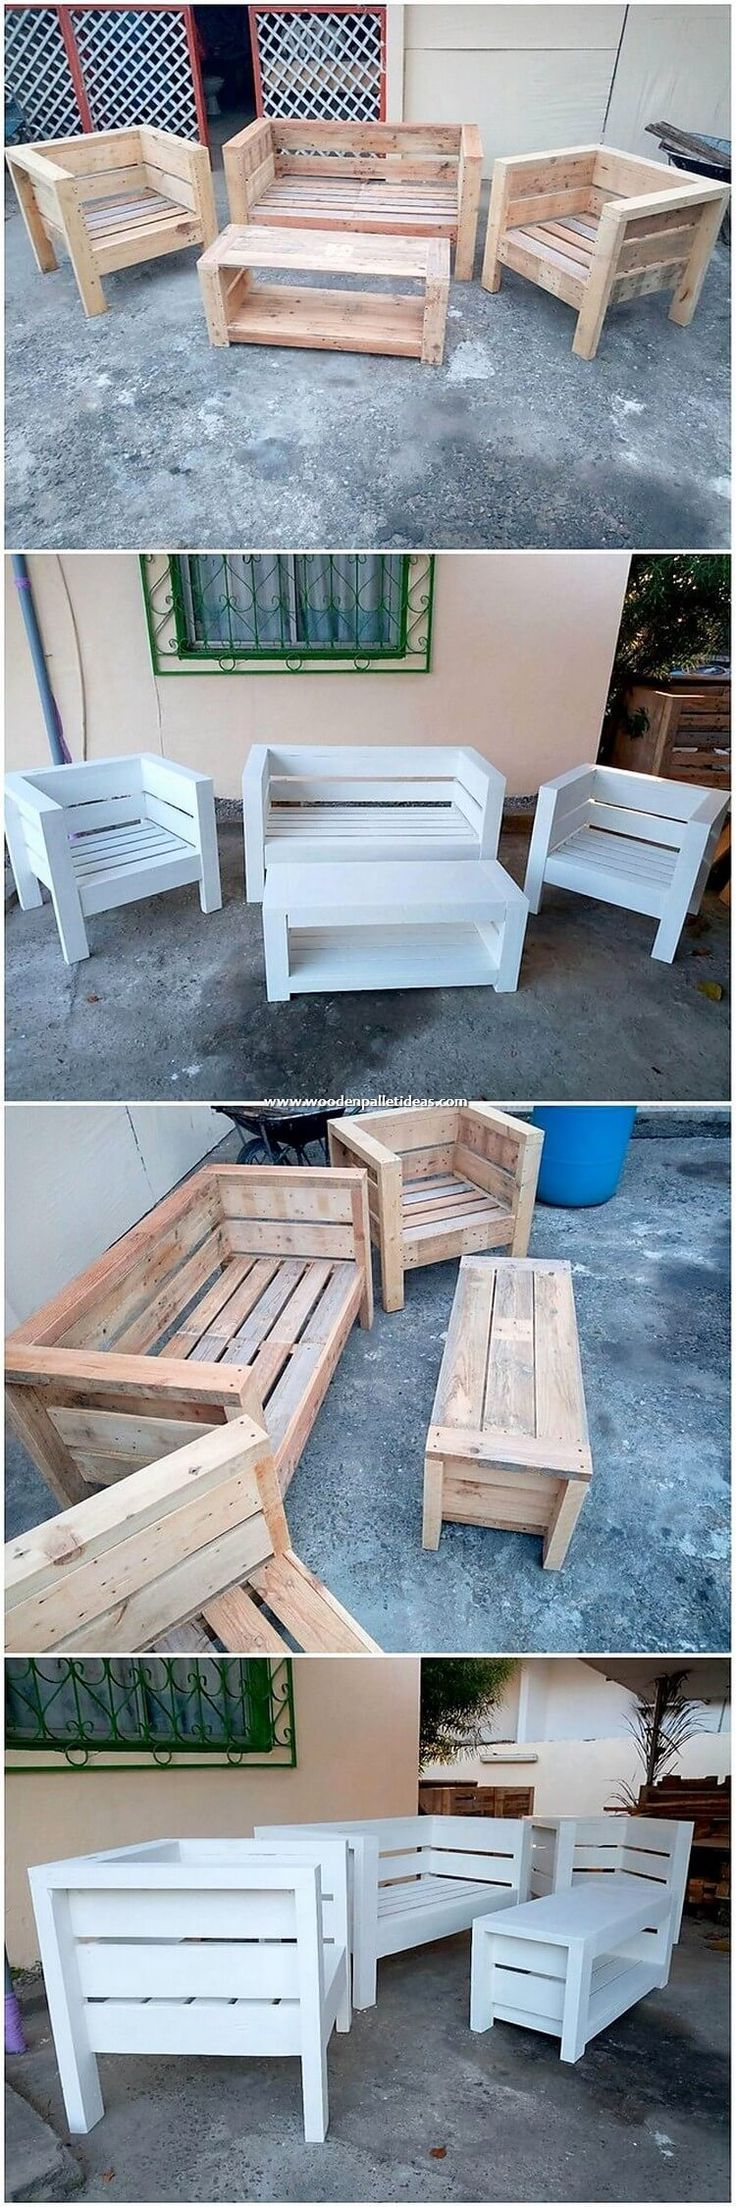 Fantastic Looking DIY Wooden Pallet Creations